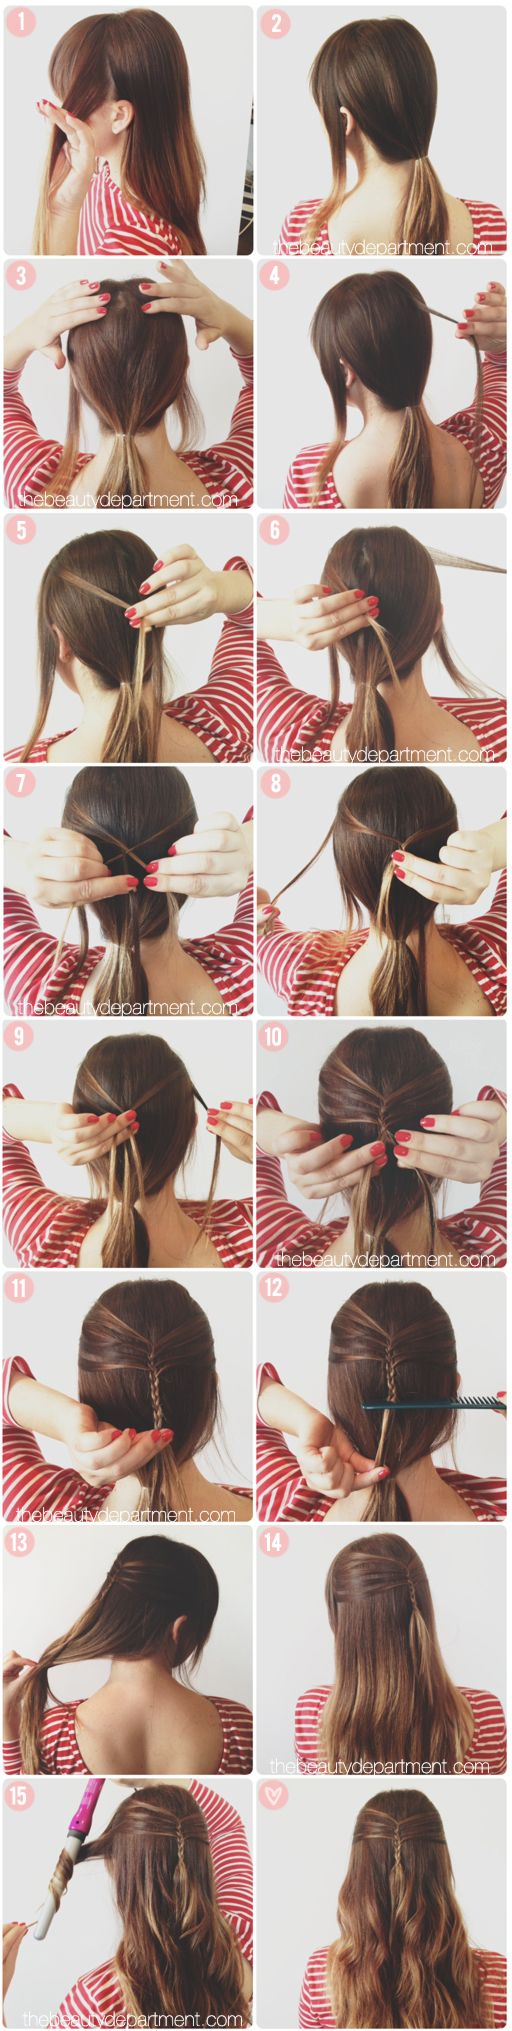 mini french braid by the beauty department. this is a cute look to do for summer to wear hair down, but get it off your face at the same time!